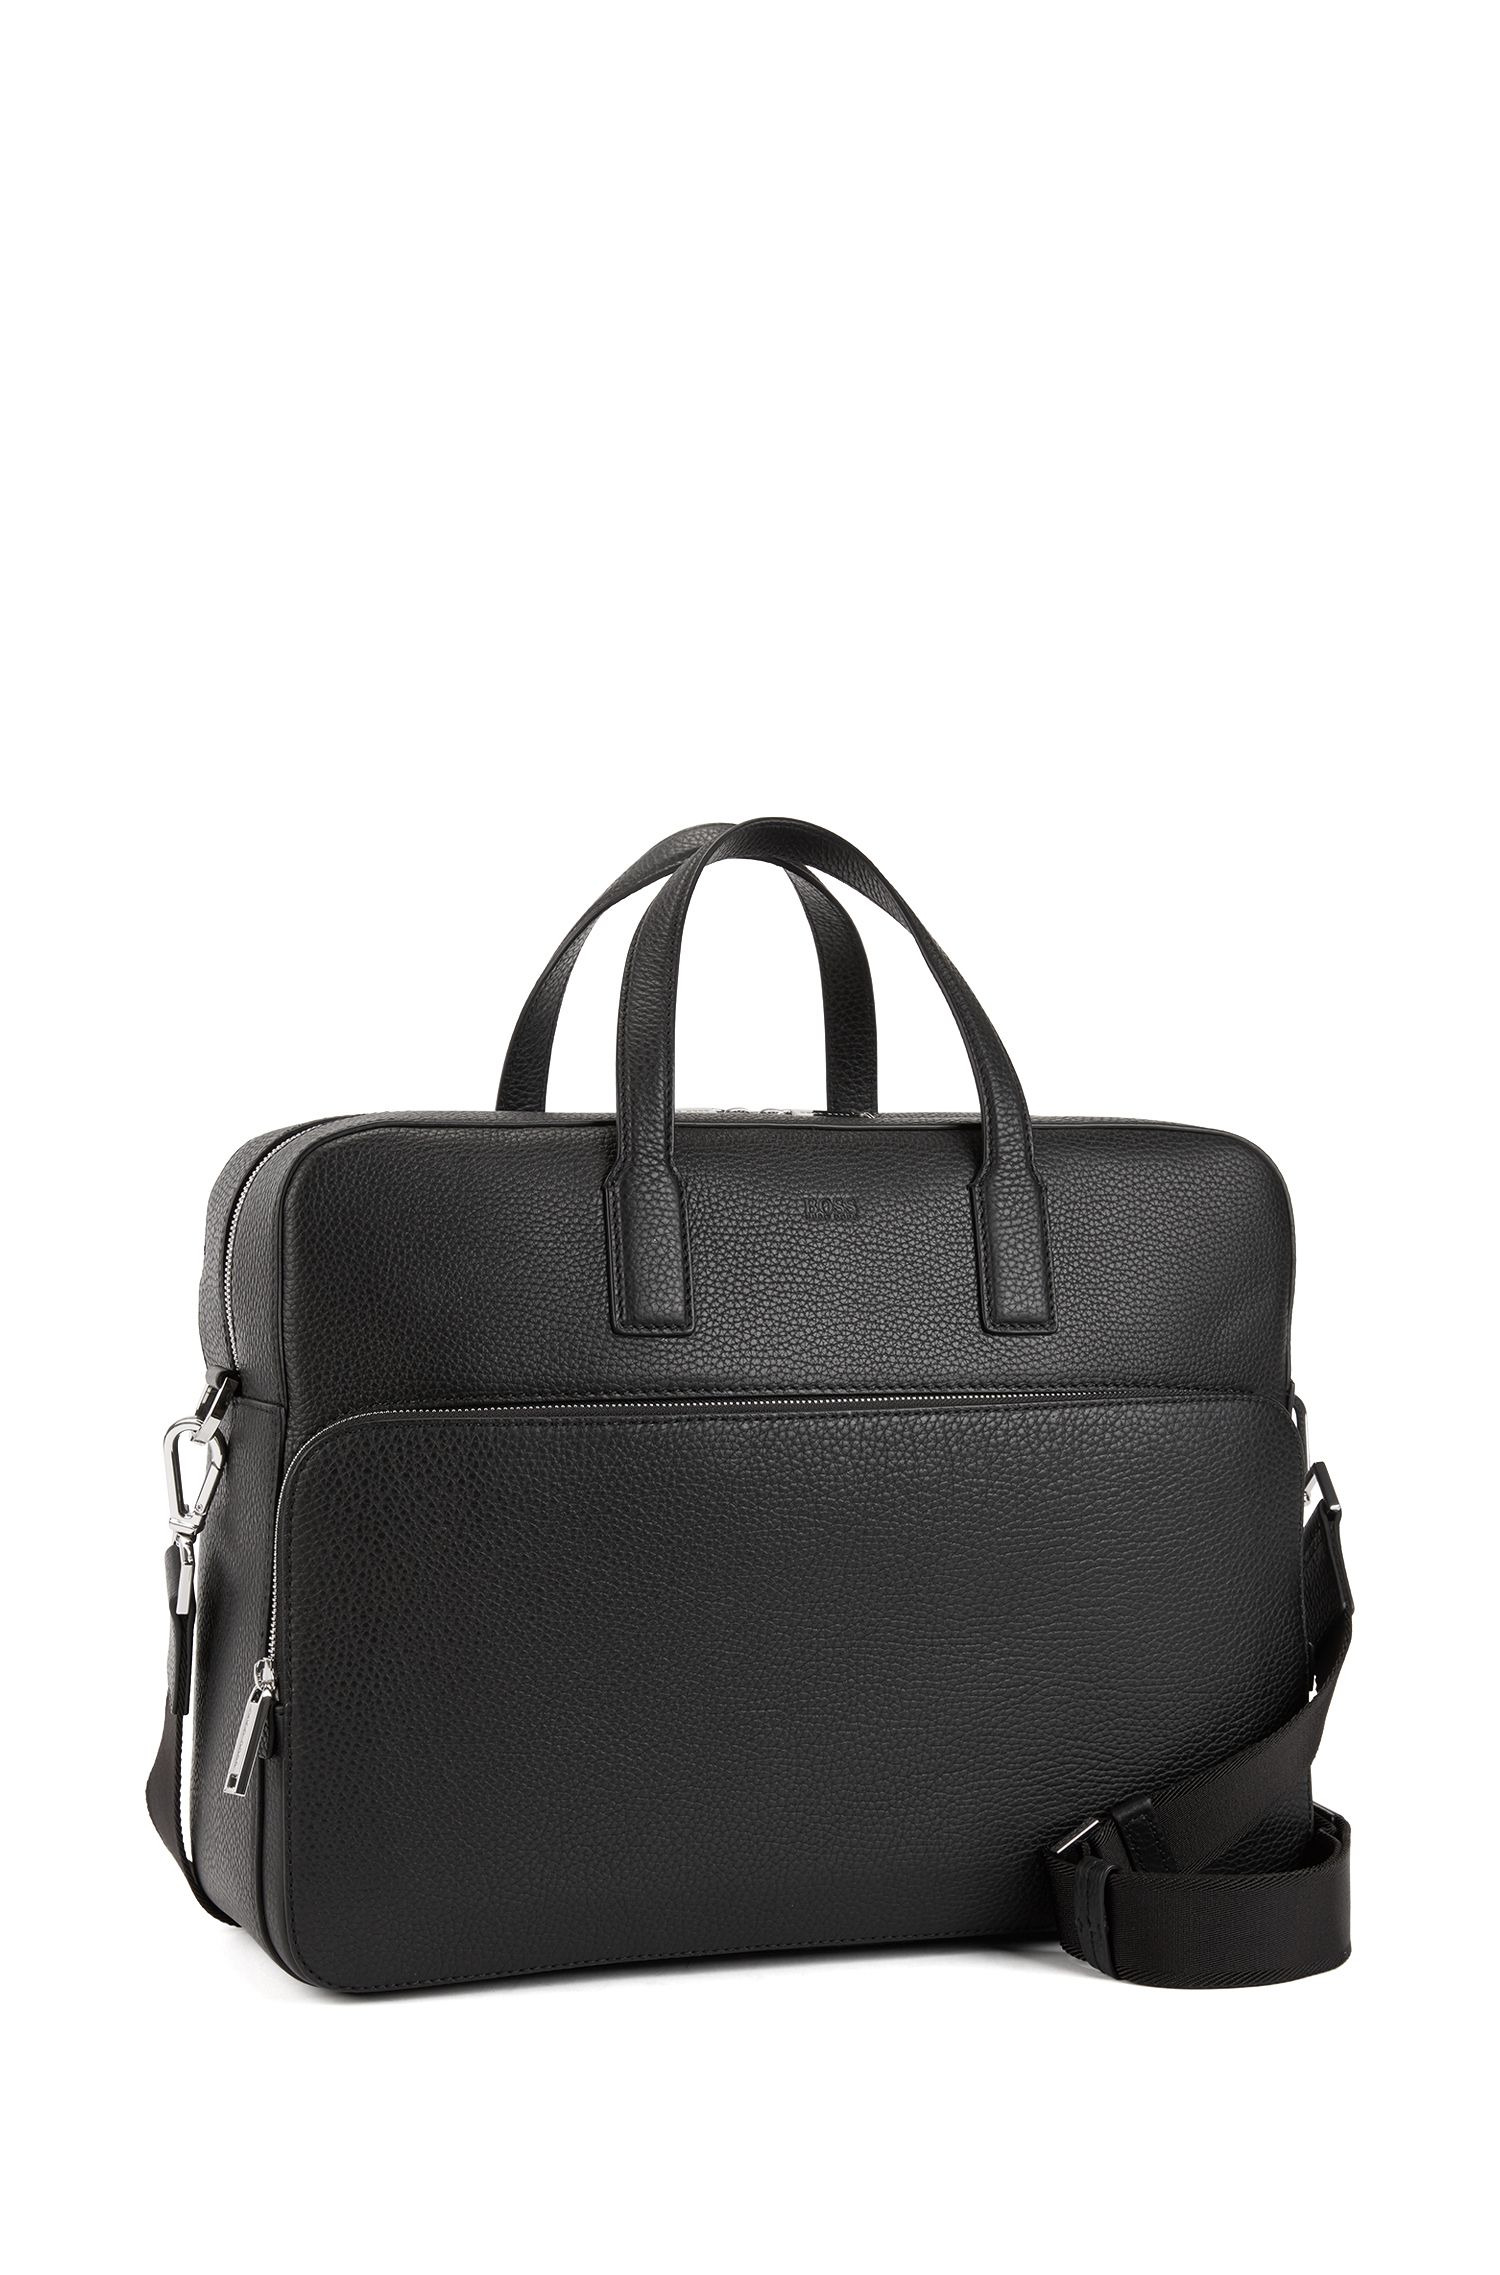 Document case in grainy Italian leather with smart sleeve, Black